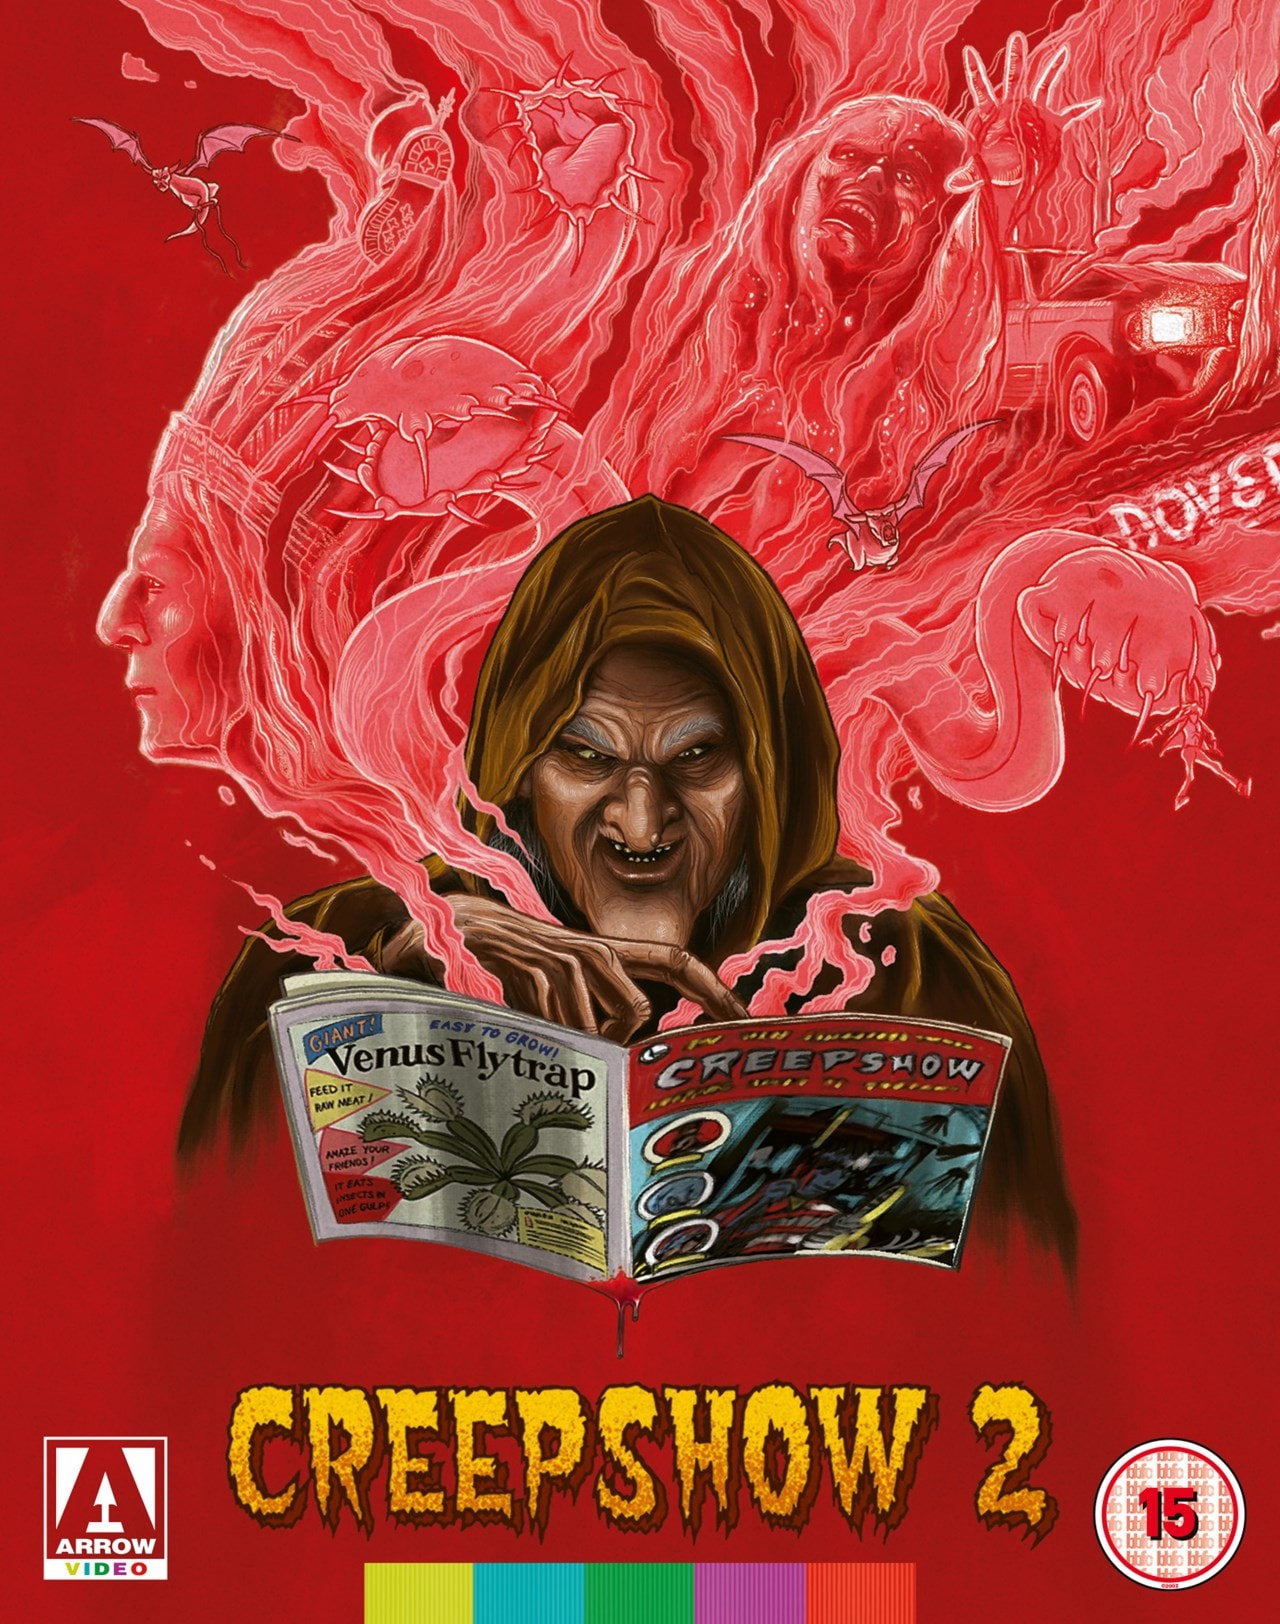 Creepshow 2: Limited Edition - 1